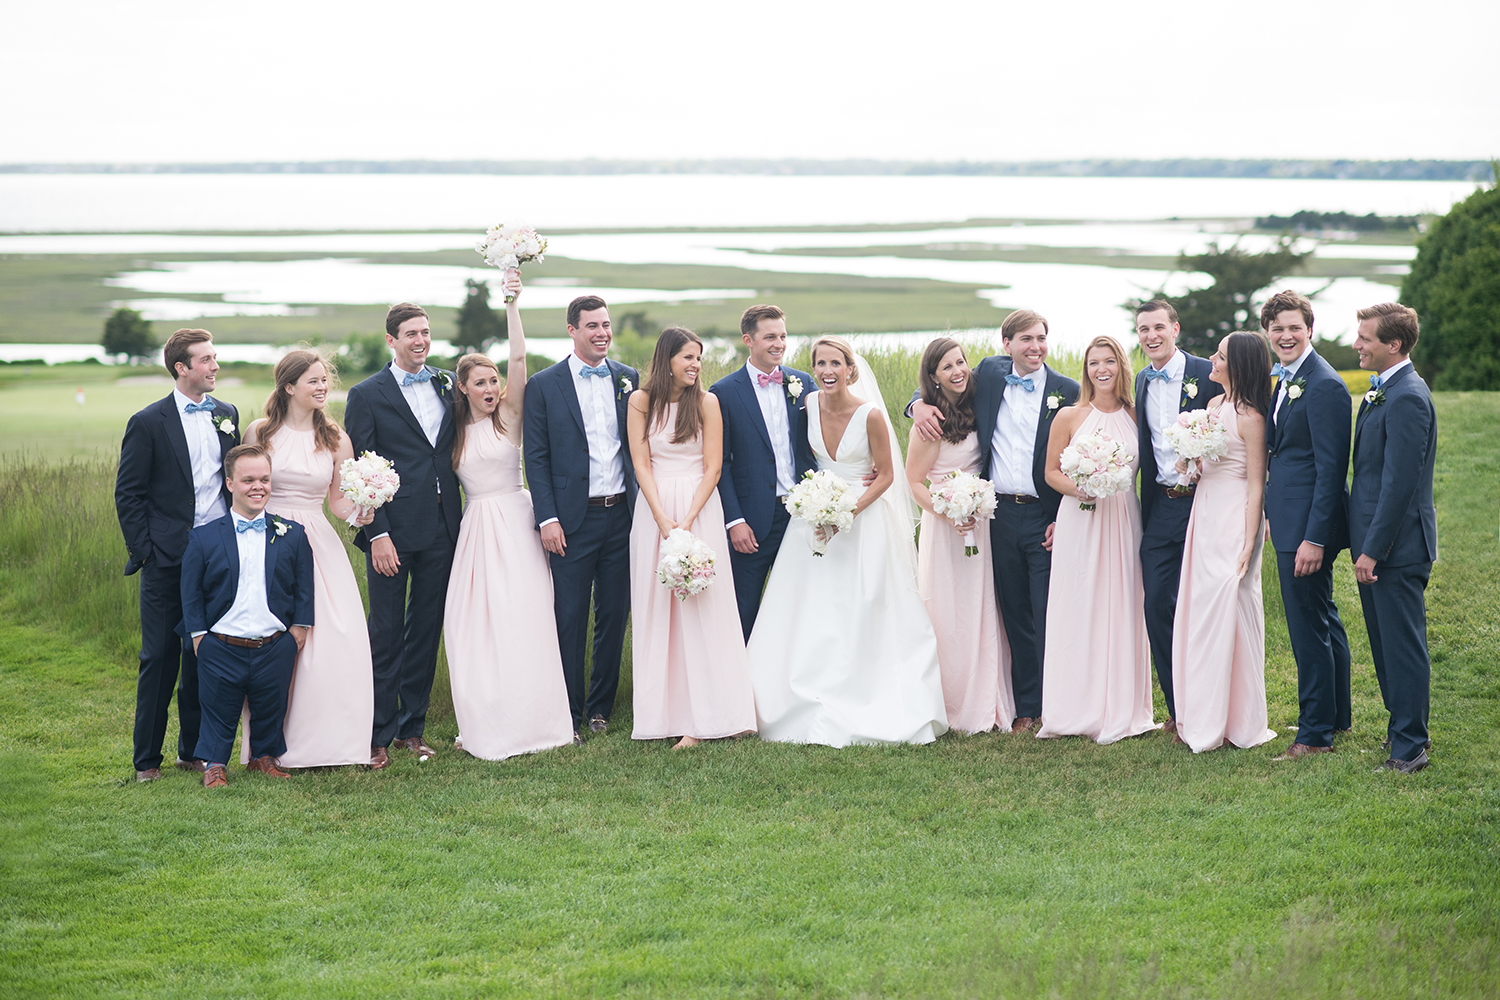 st-andrews-hyannisport-wedding-photographer-40